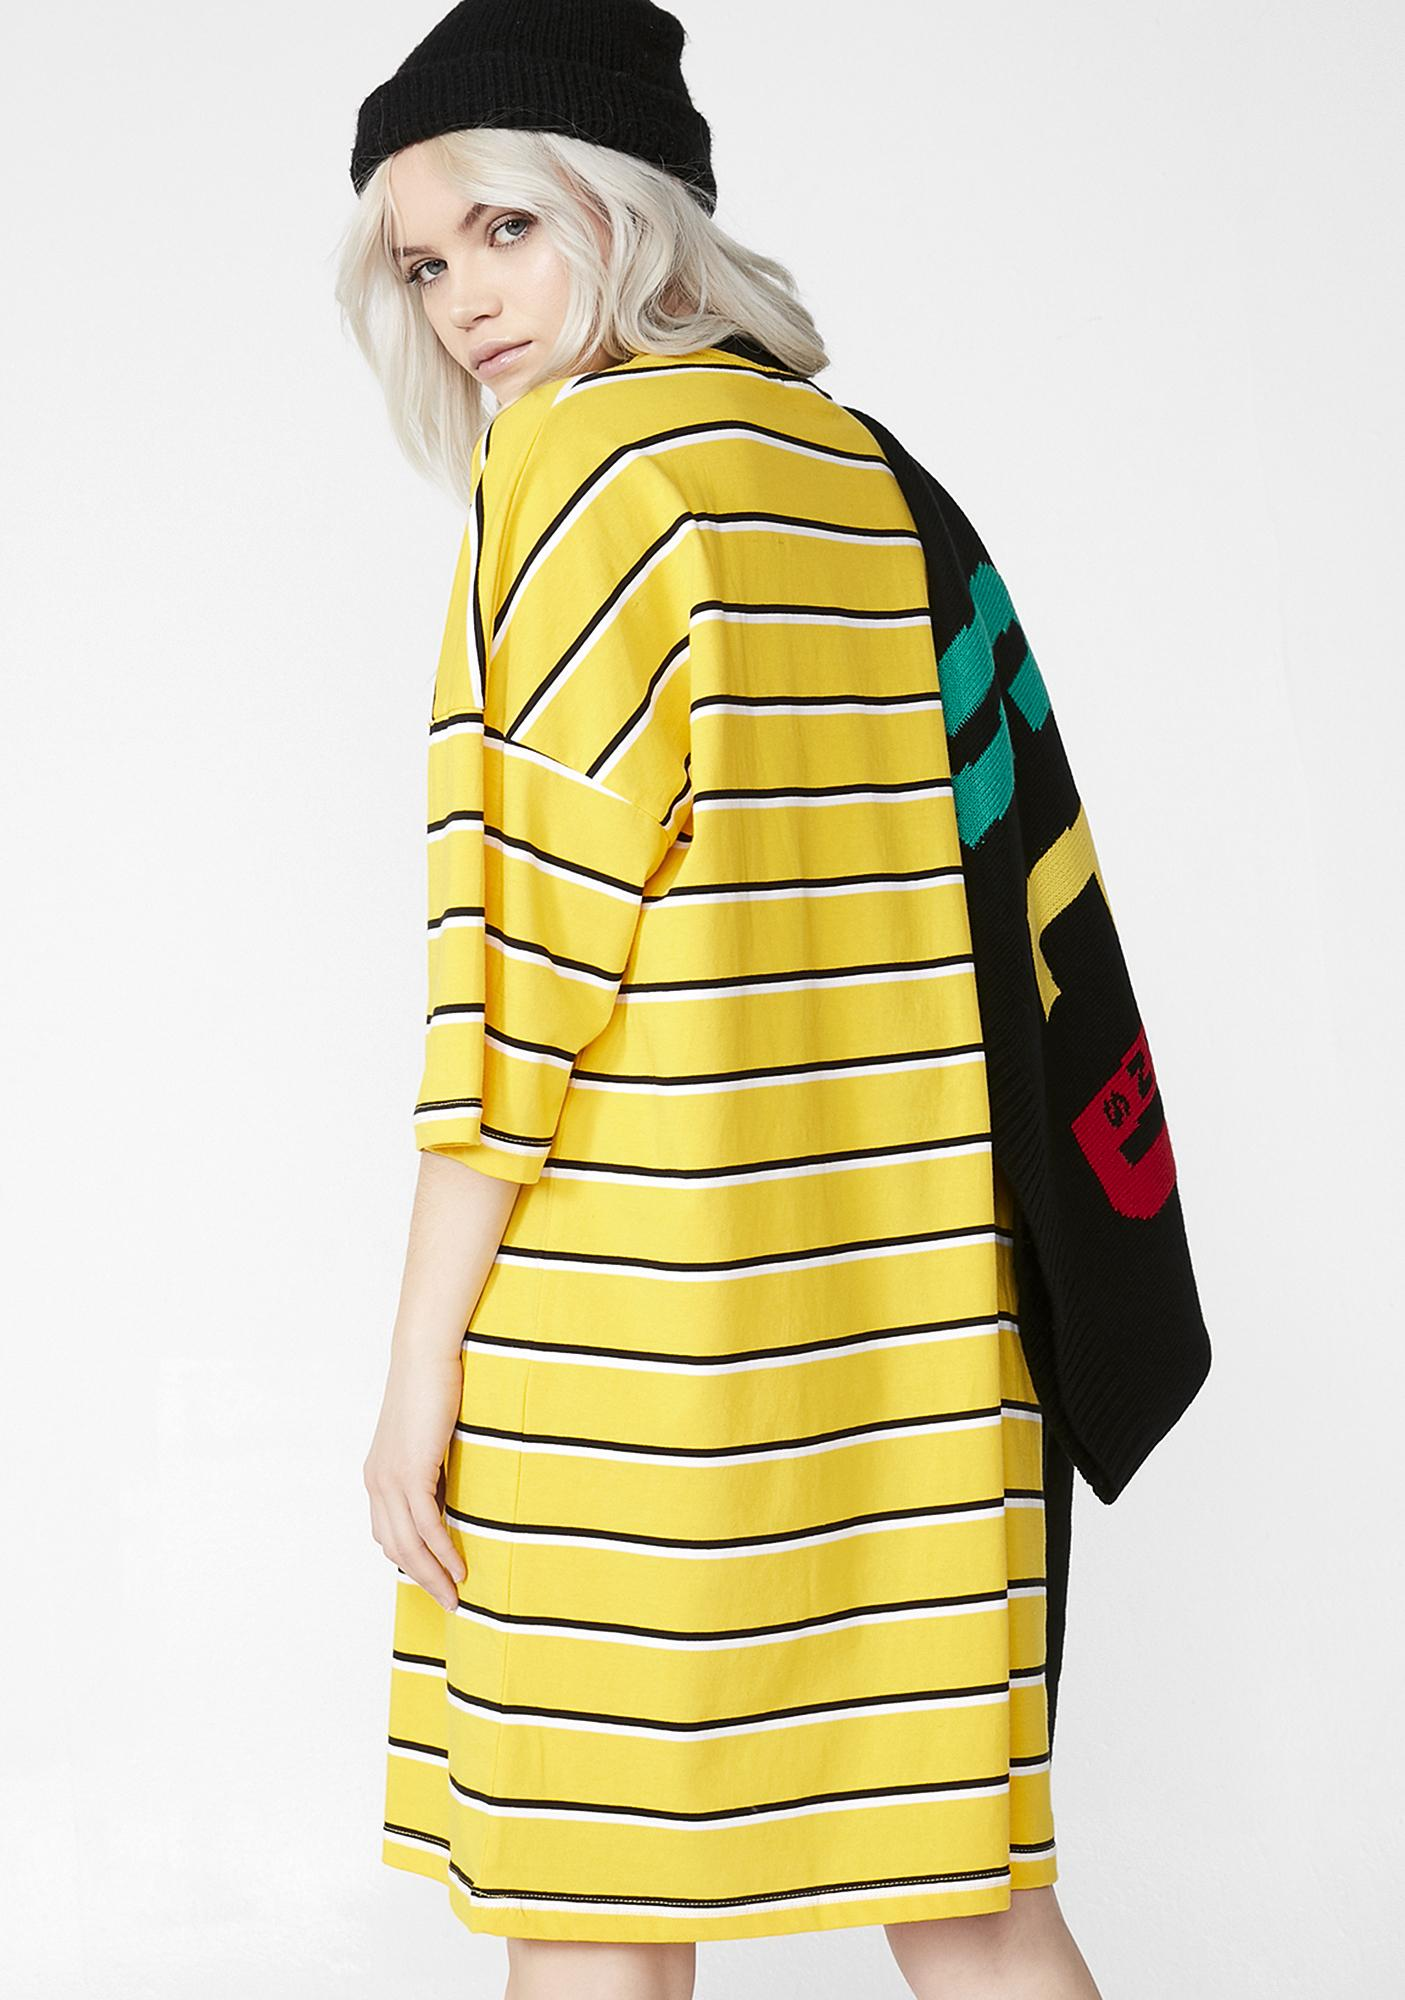 The Ragged Priest Flavour Dress